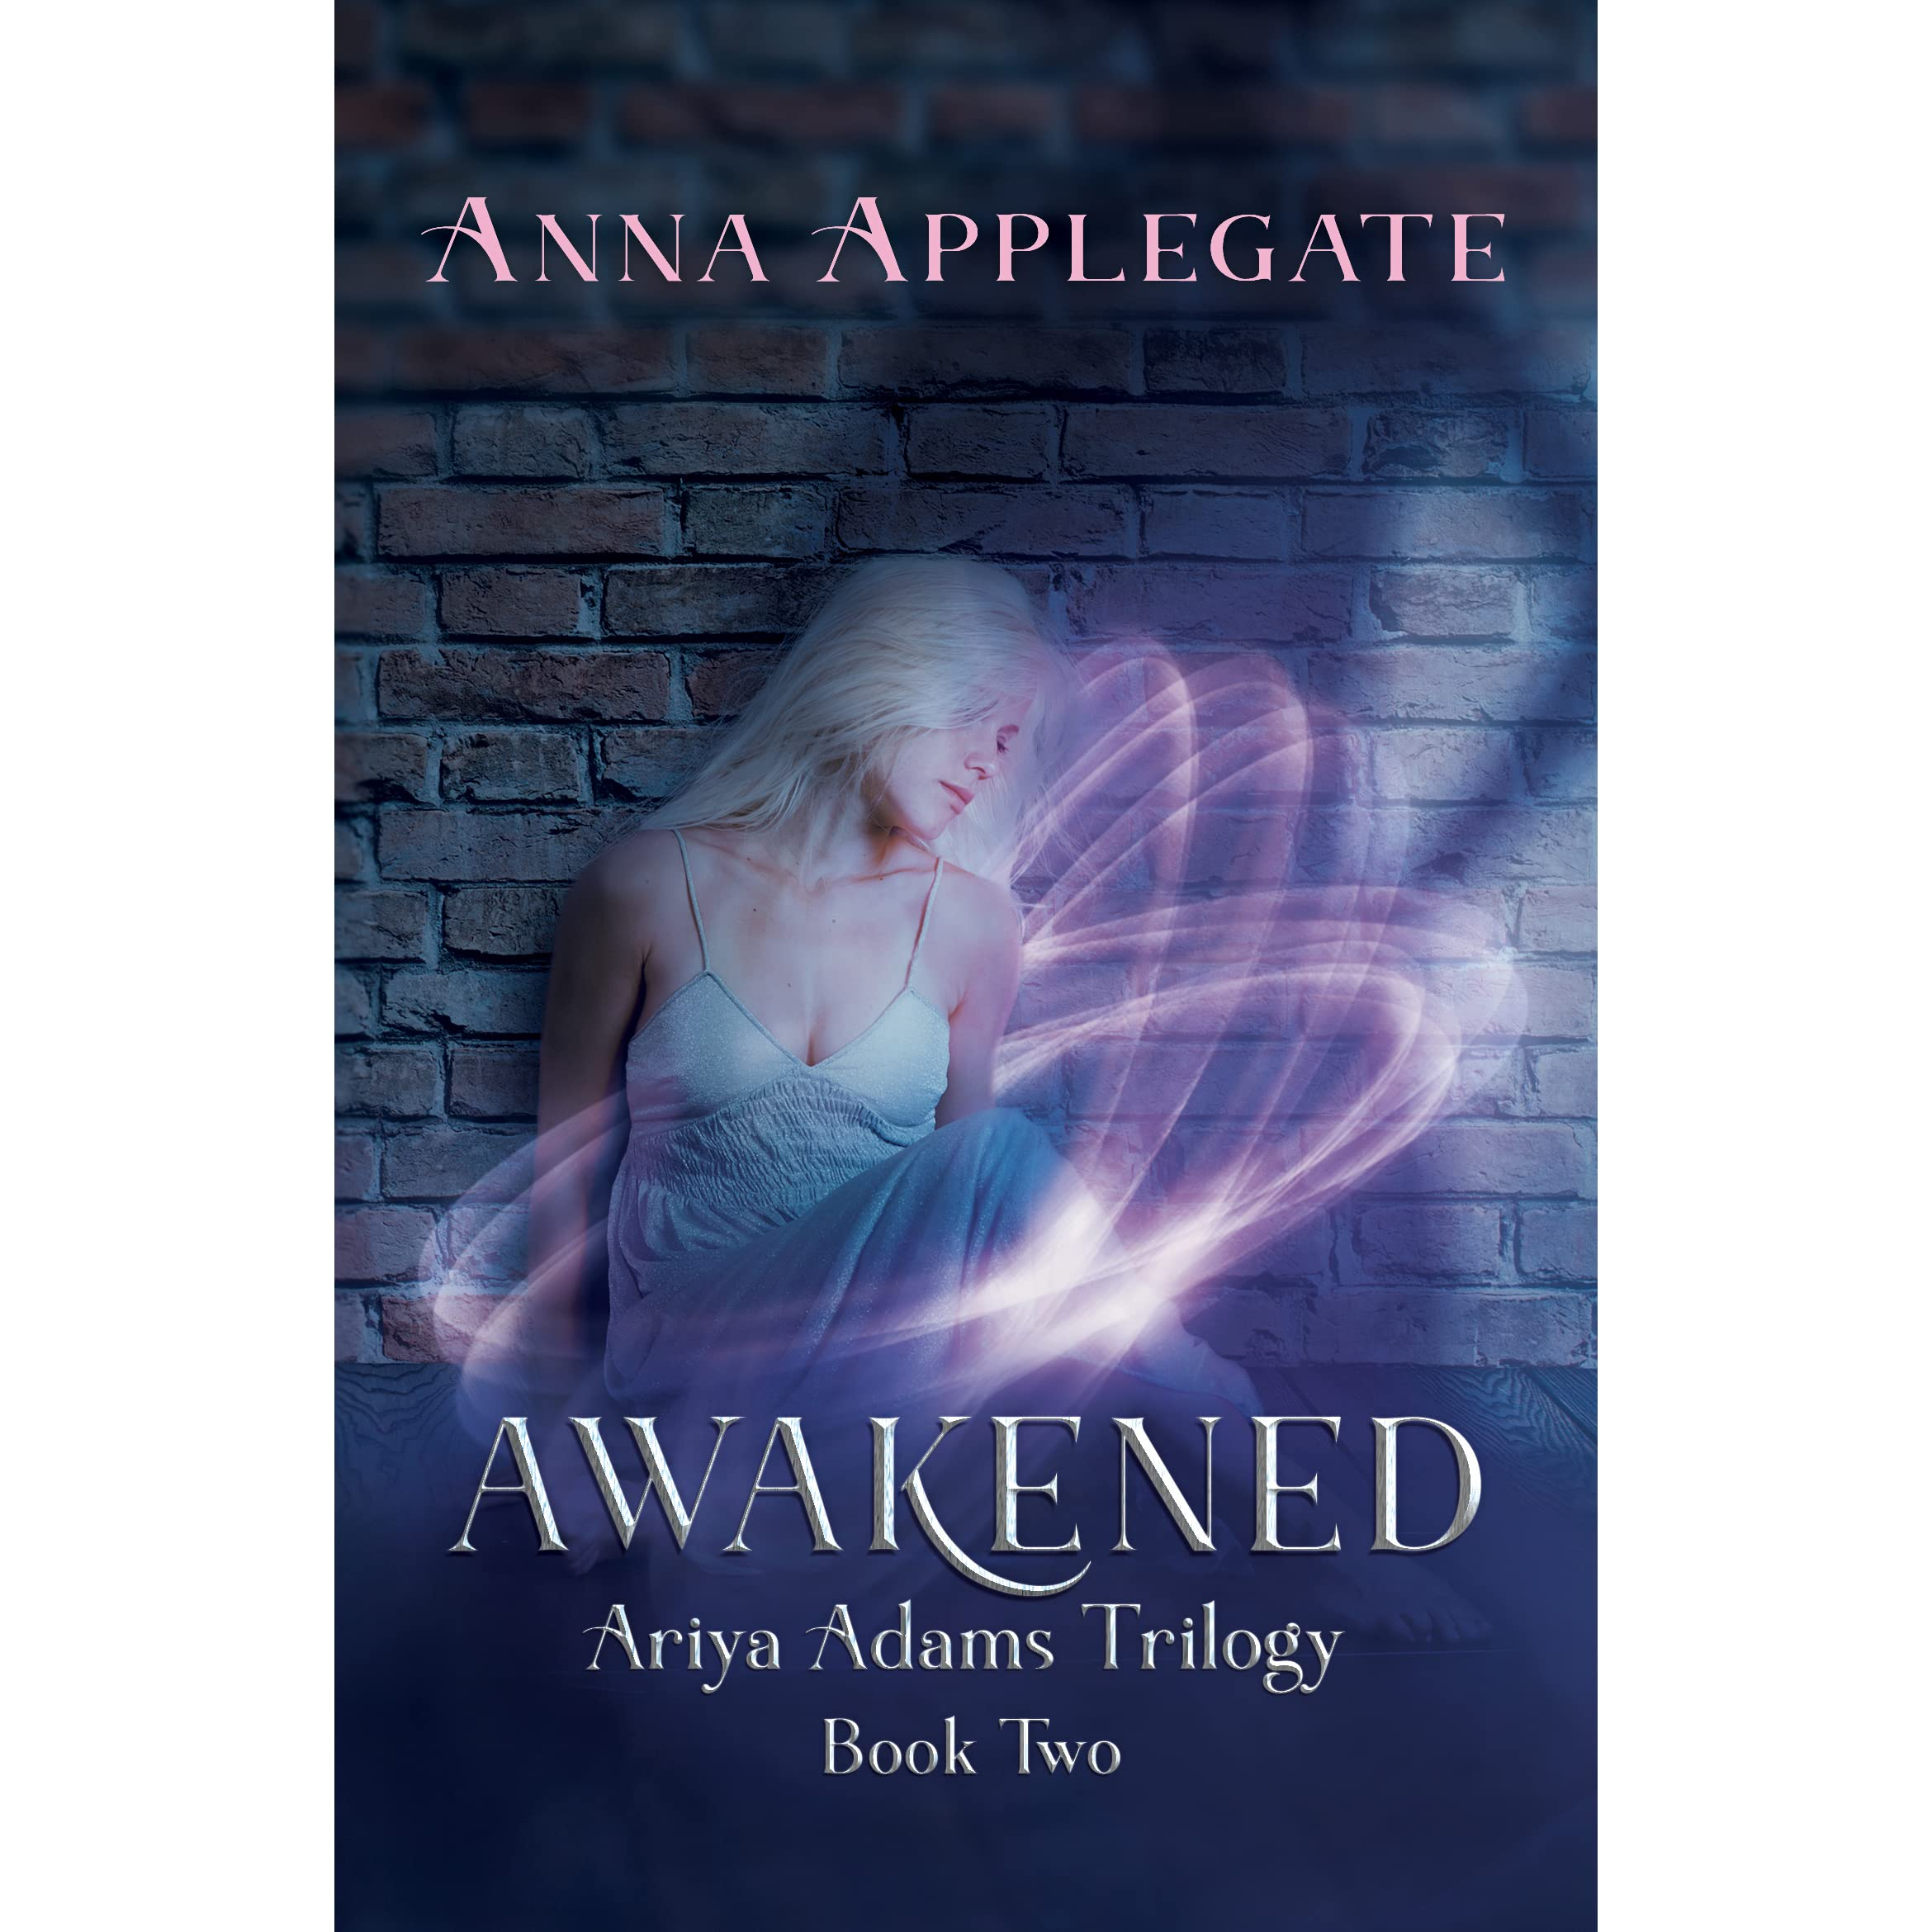 Awakened (Book 2 in the Ariya Adams Trilogy)